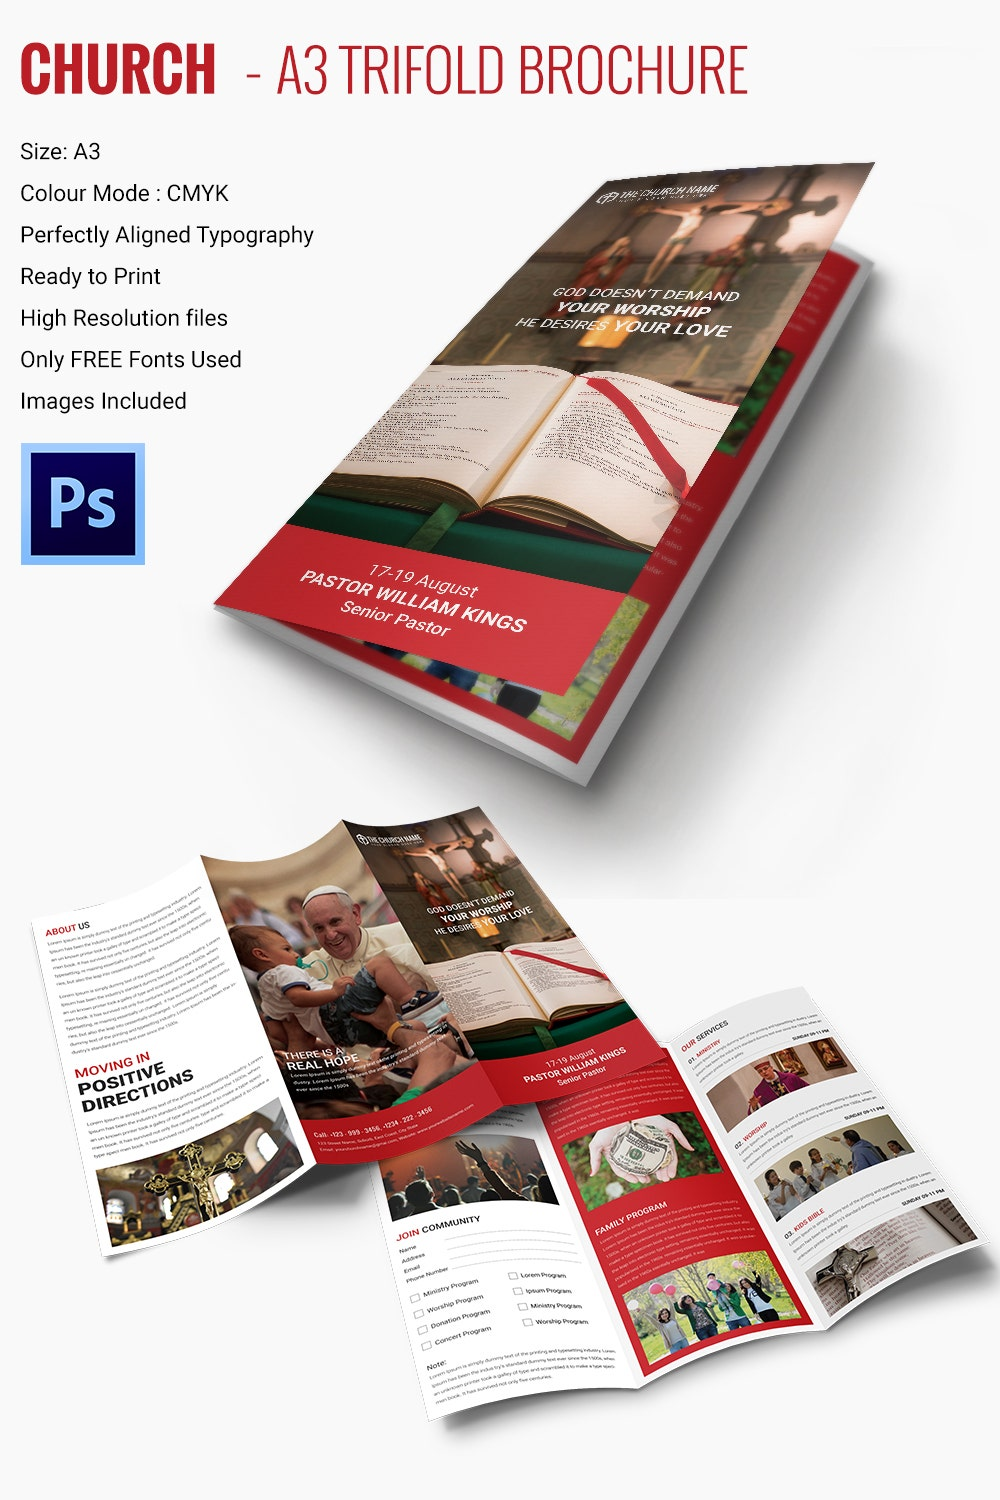 A3 Trifold Church Brochure Template